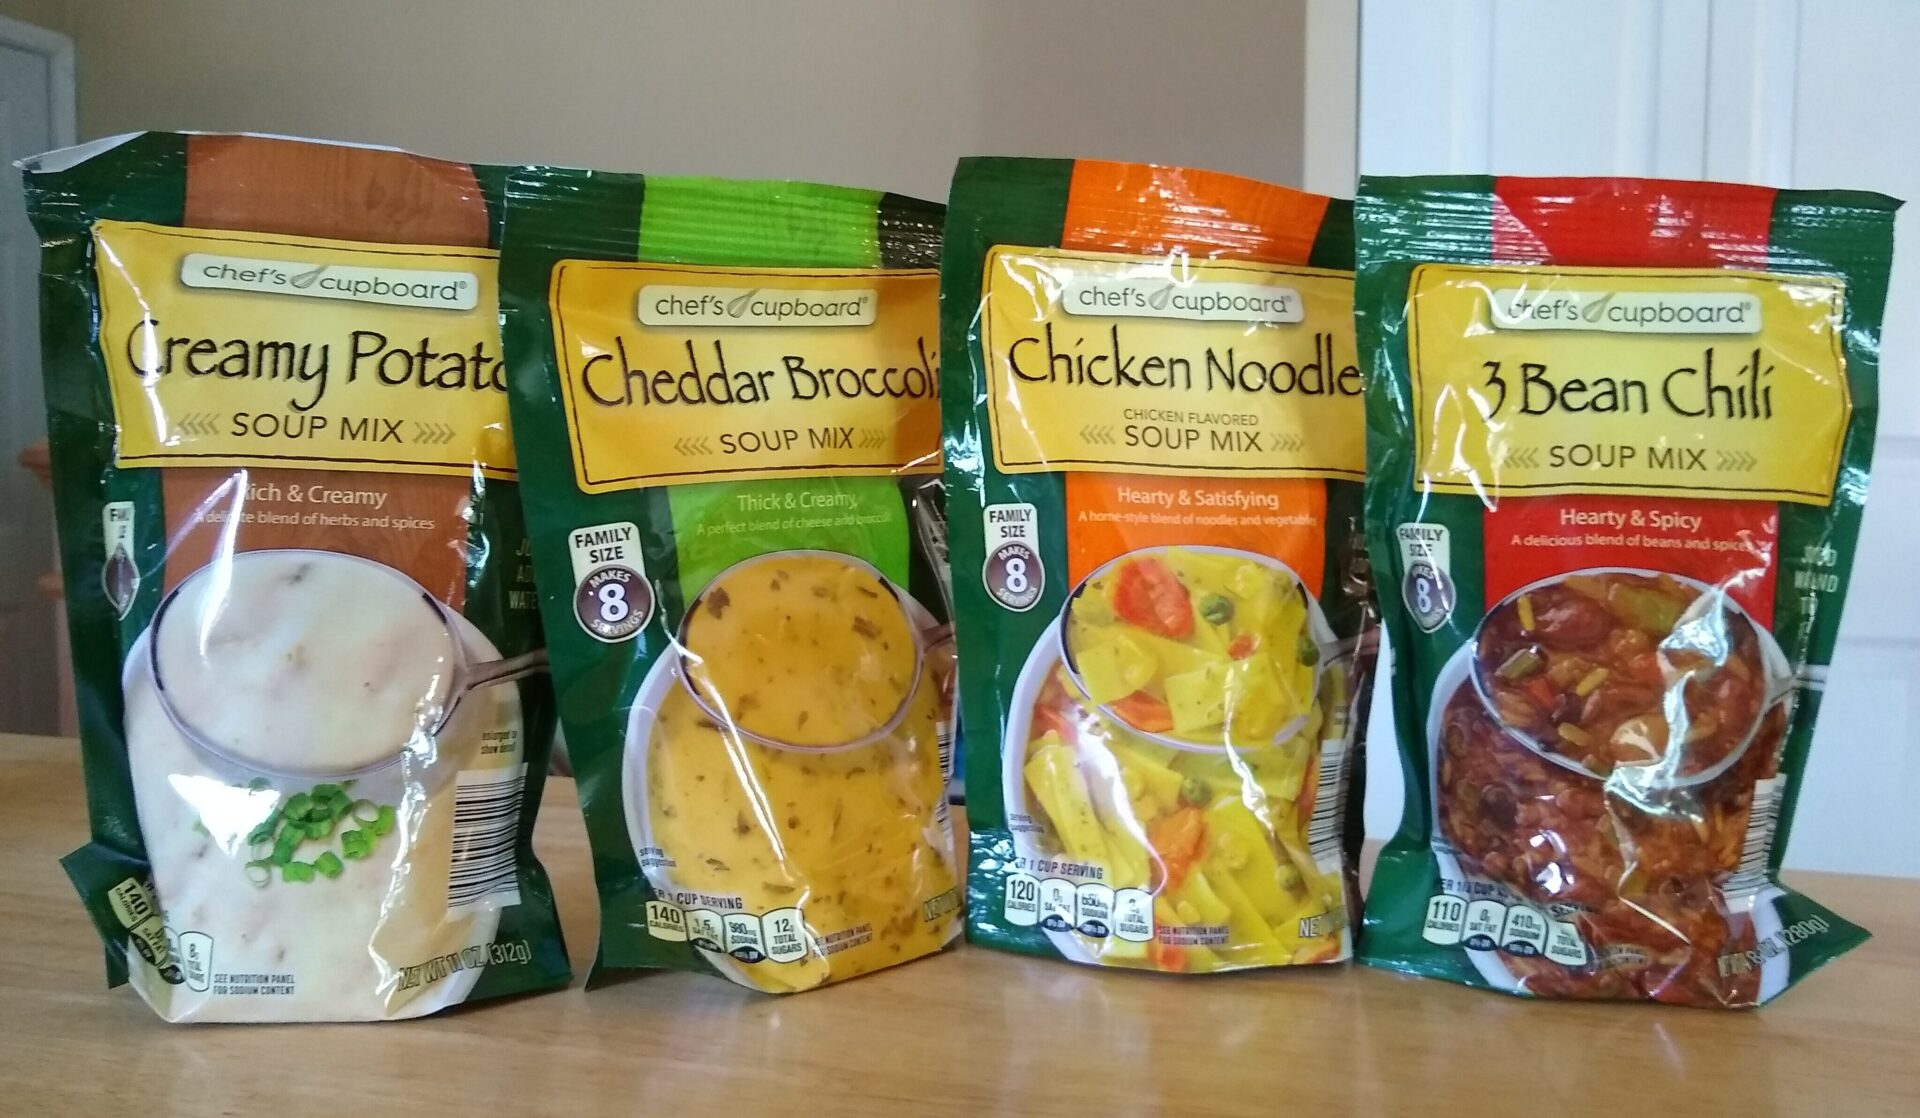 Chefs Cupboard Soup Mix